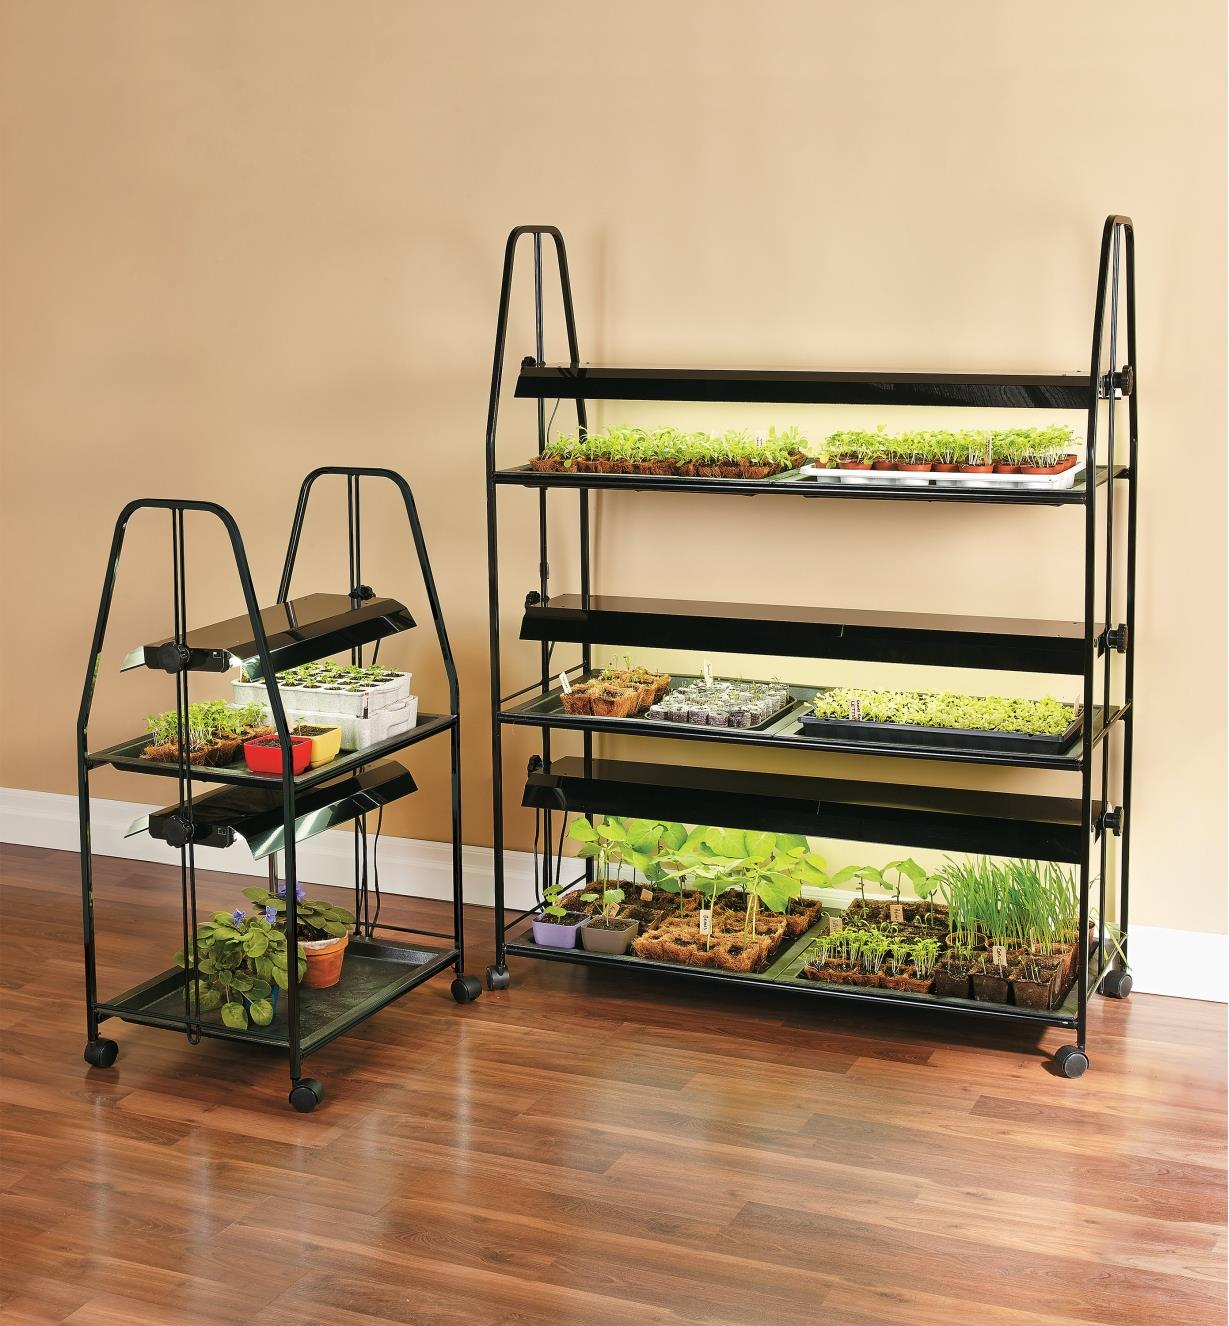 Two-tier and three-tier Floralight Grow-Light Stands with various plants growing on the tiers